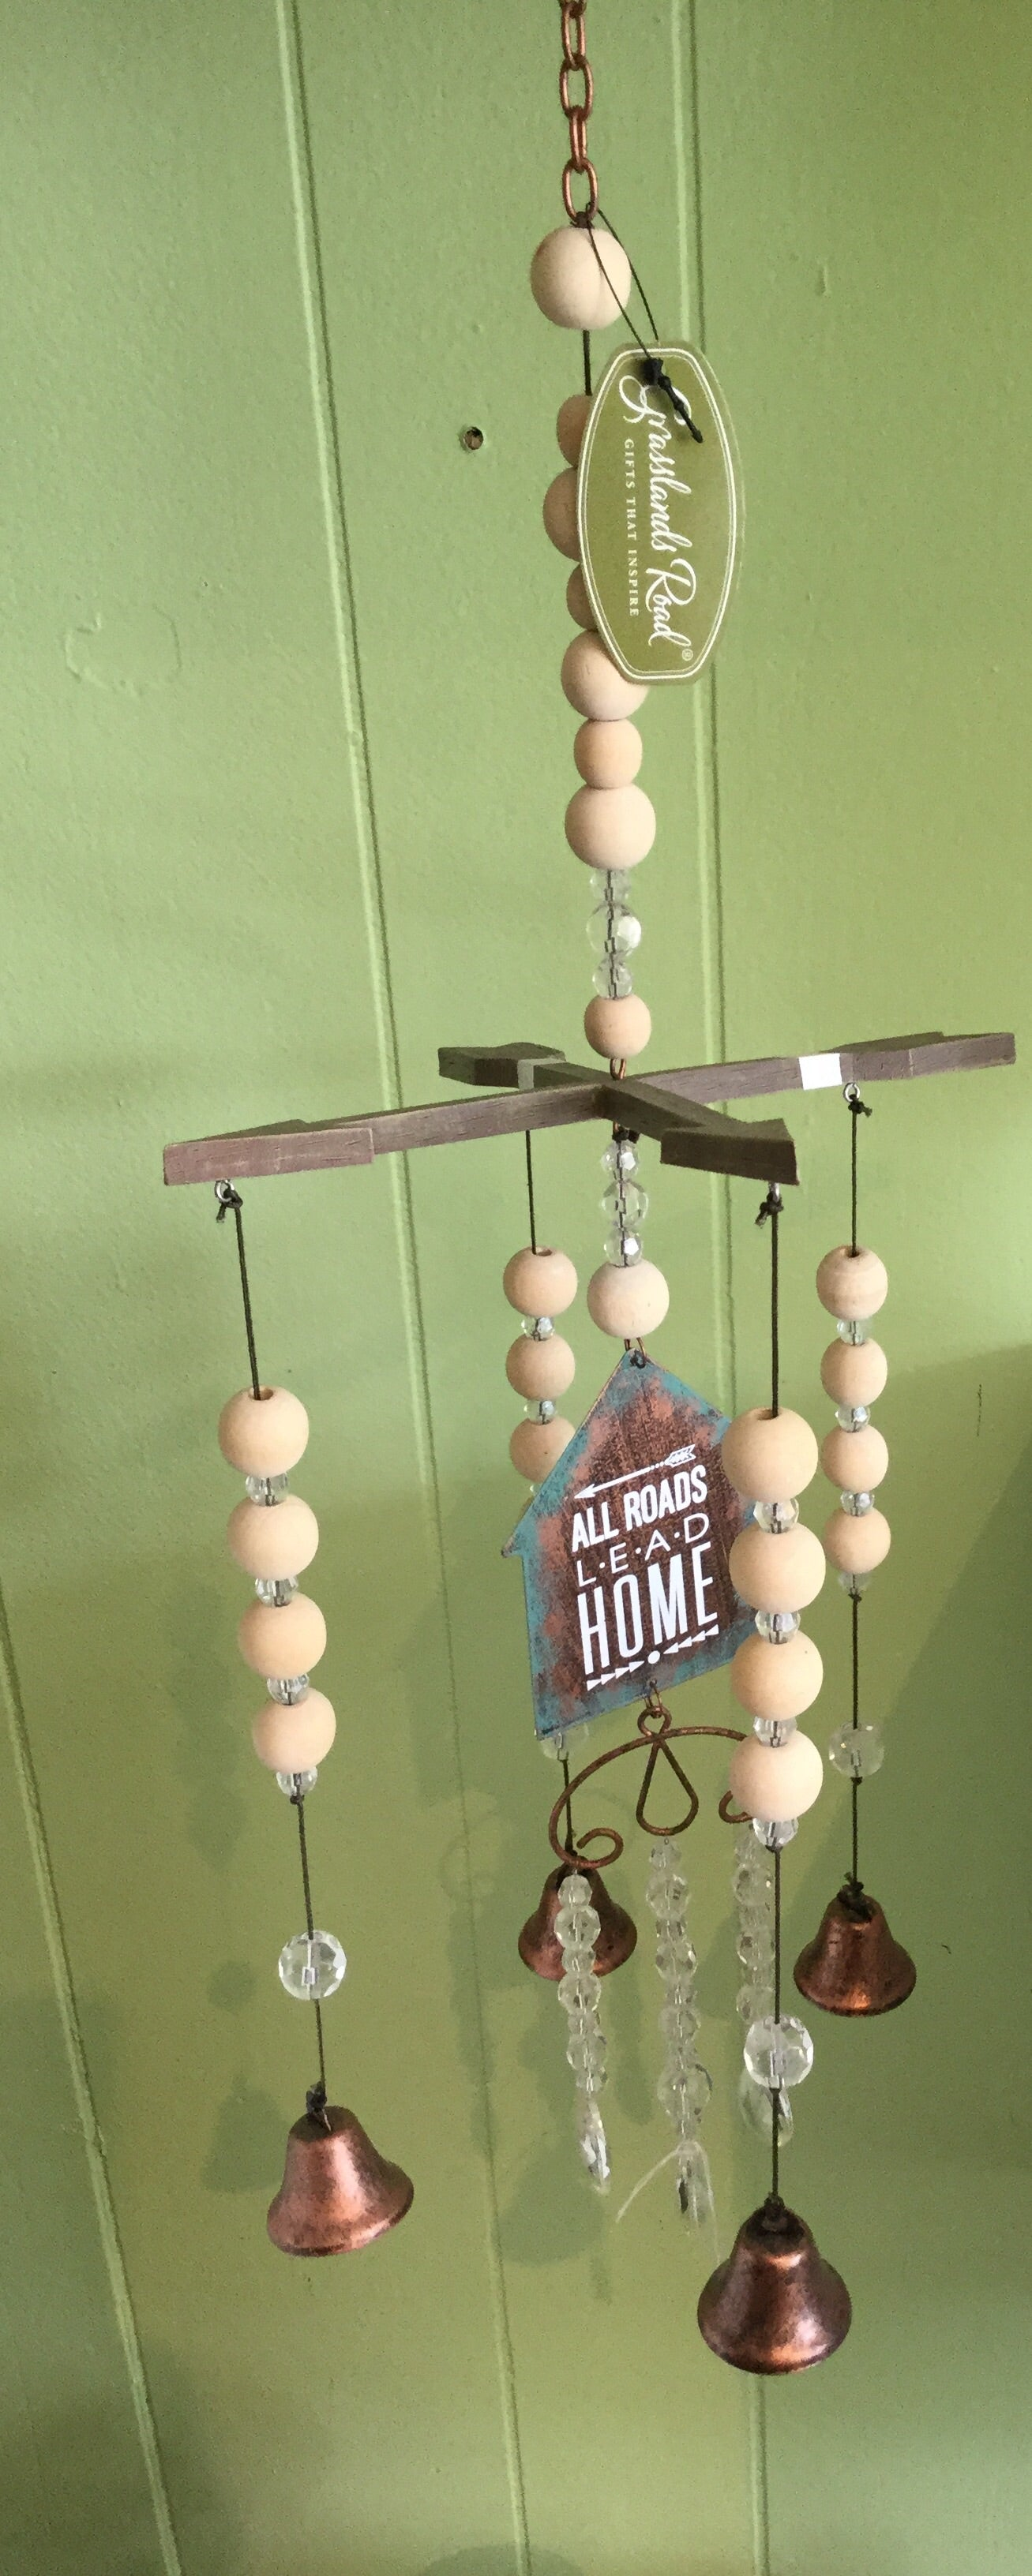 Bells and chimes karmic inspirations grasslands road all roads lead home arrow wind chime buycottarizona Choice Image